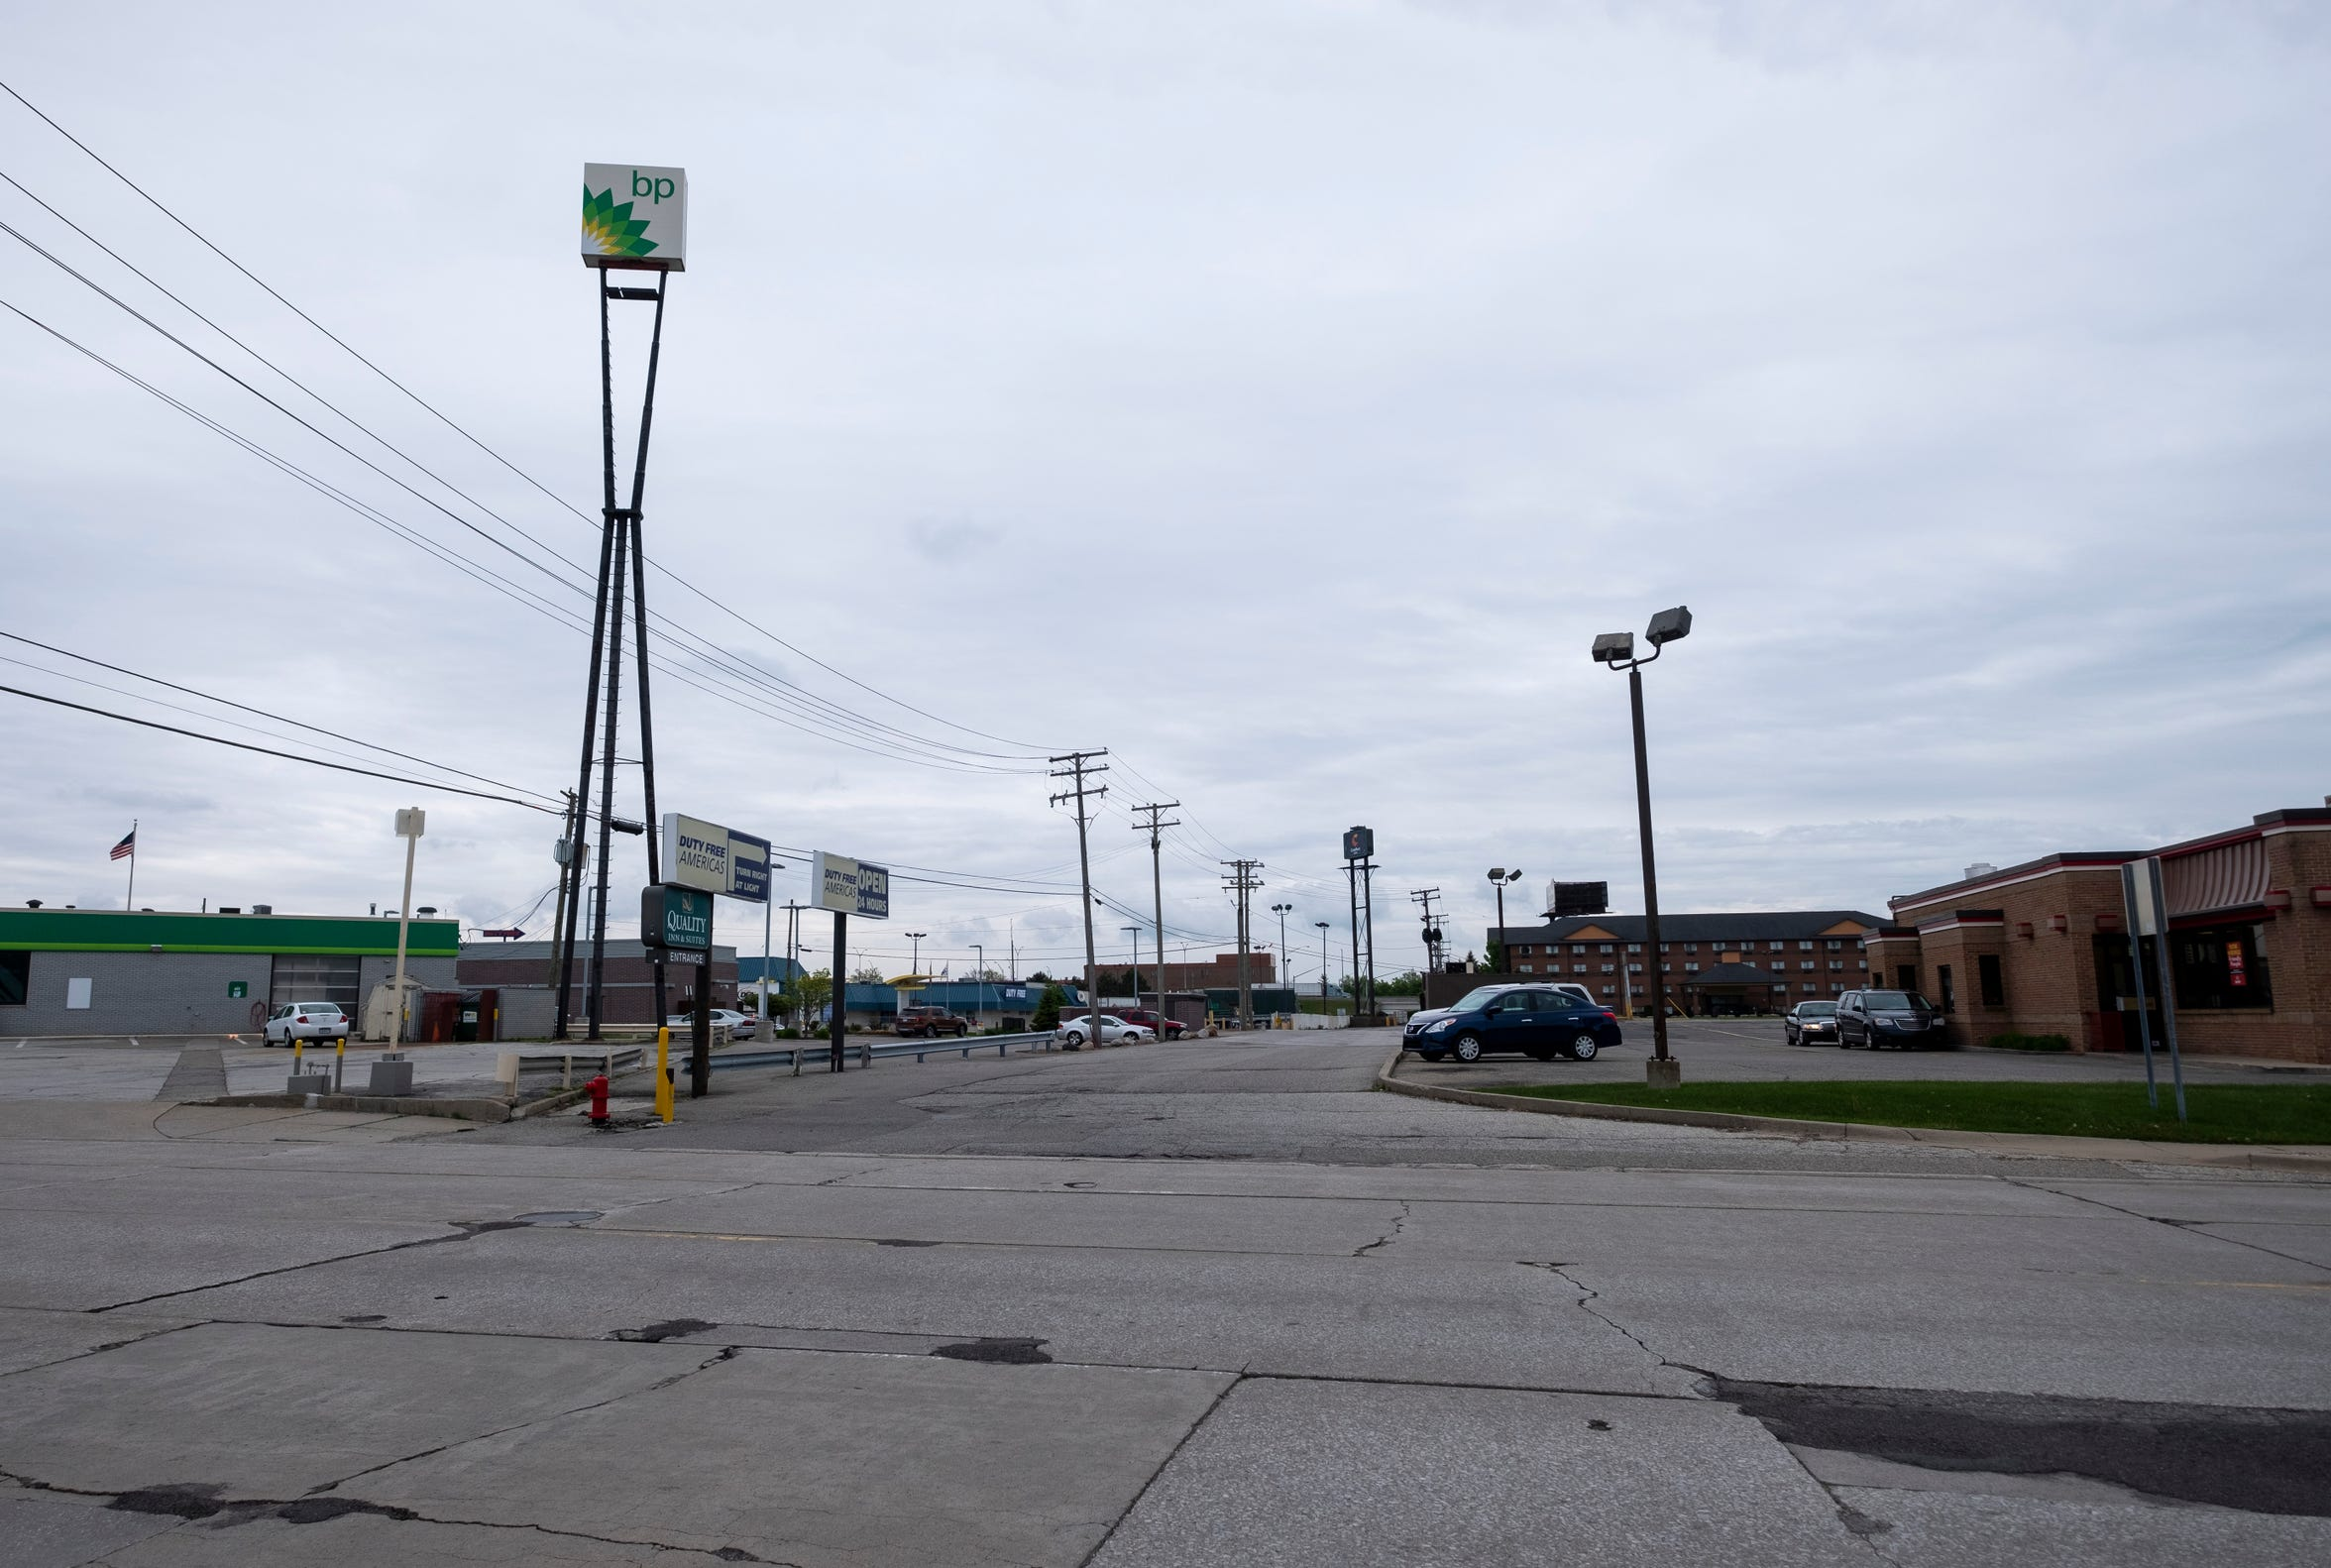 Businesses south of Hancock Street in Port Huron will work to keep the sewers accessible while the city completes its final sewer separation project later this year.